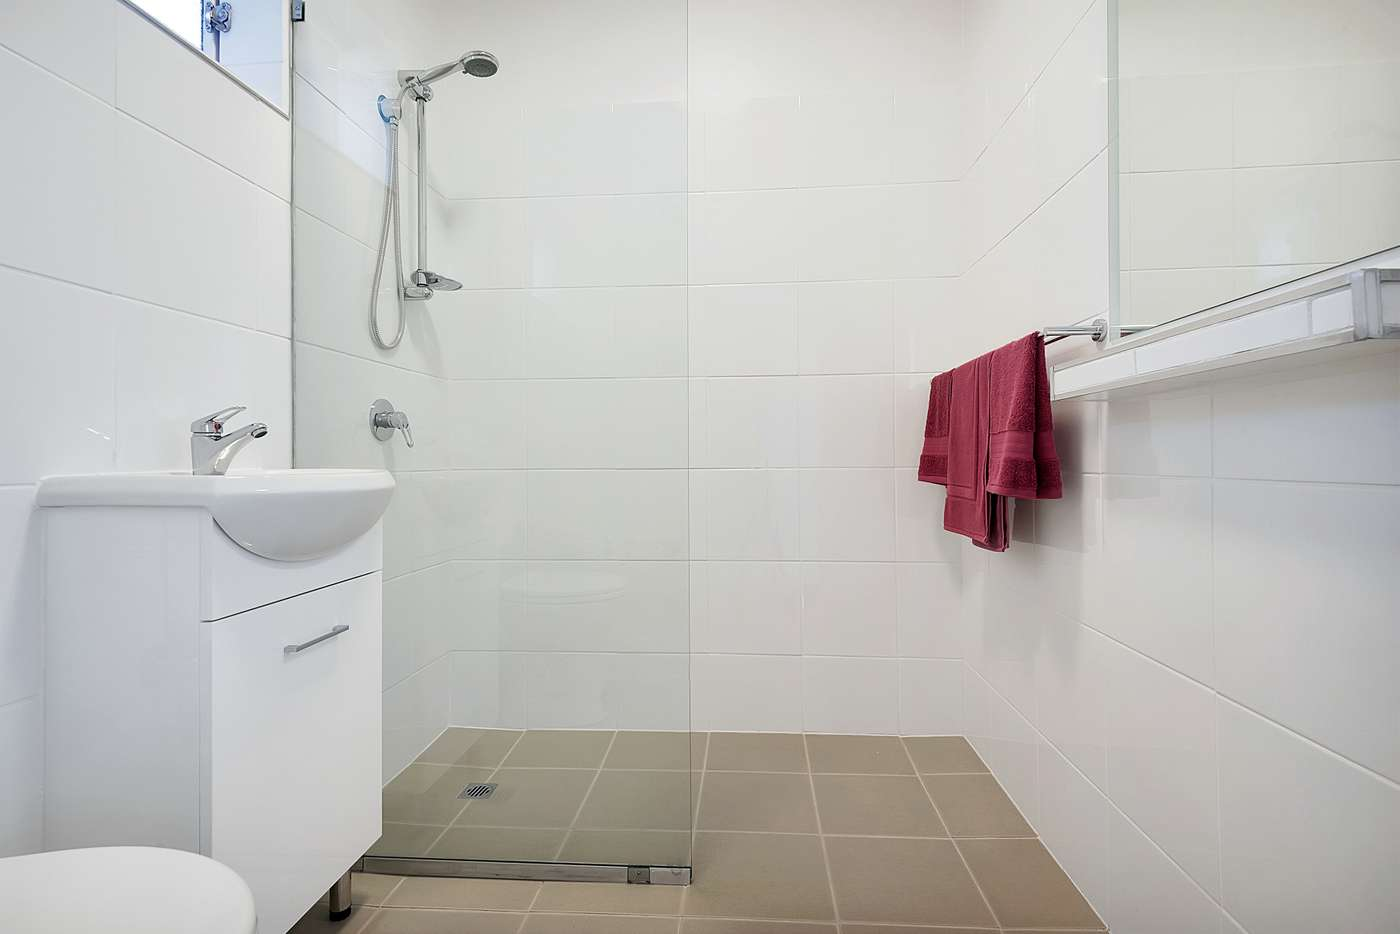 Sixth view of Homely unit listing, 40A Blackler Street, Semaphore SA 5019